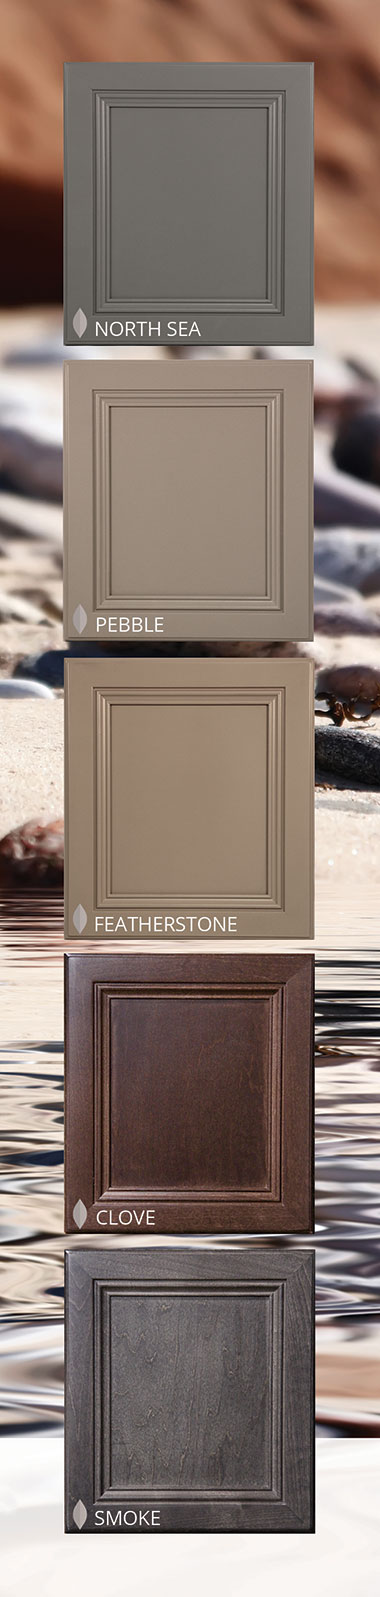 Woodmont Cabinetry 5 New Color Finishes